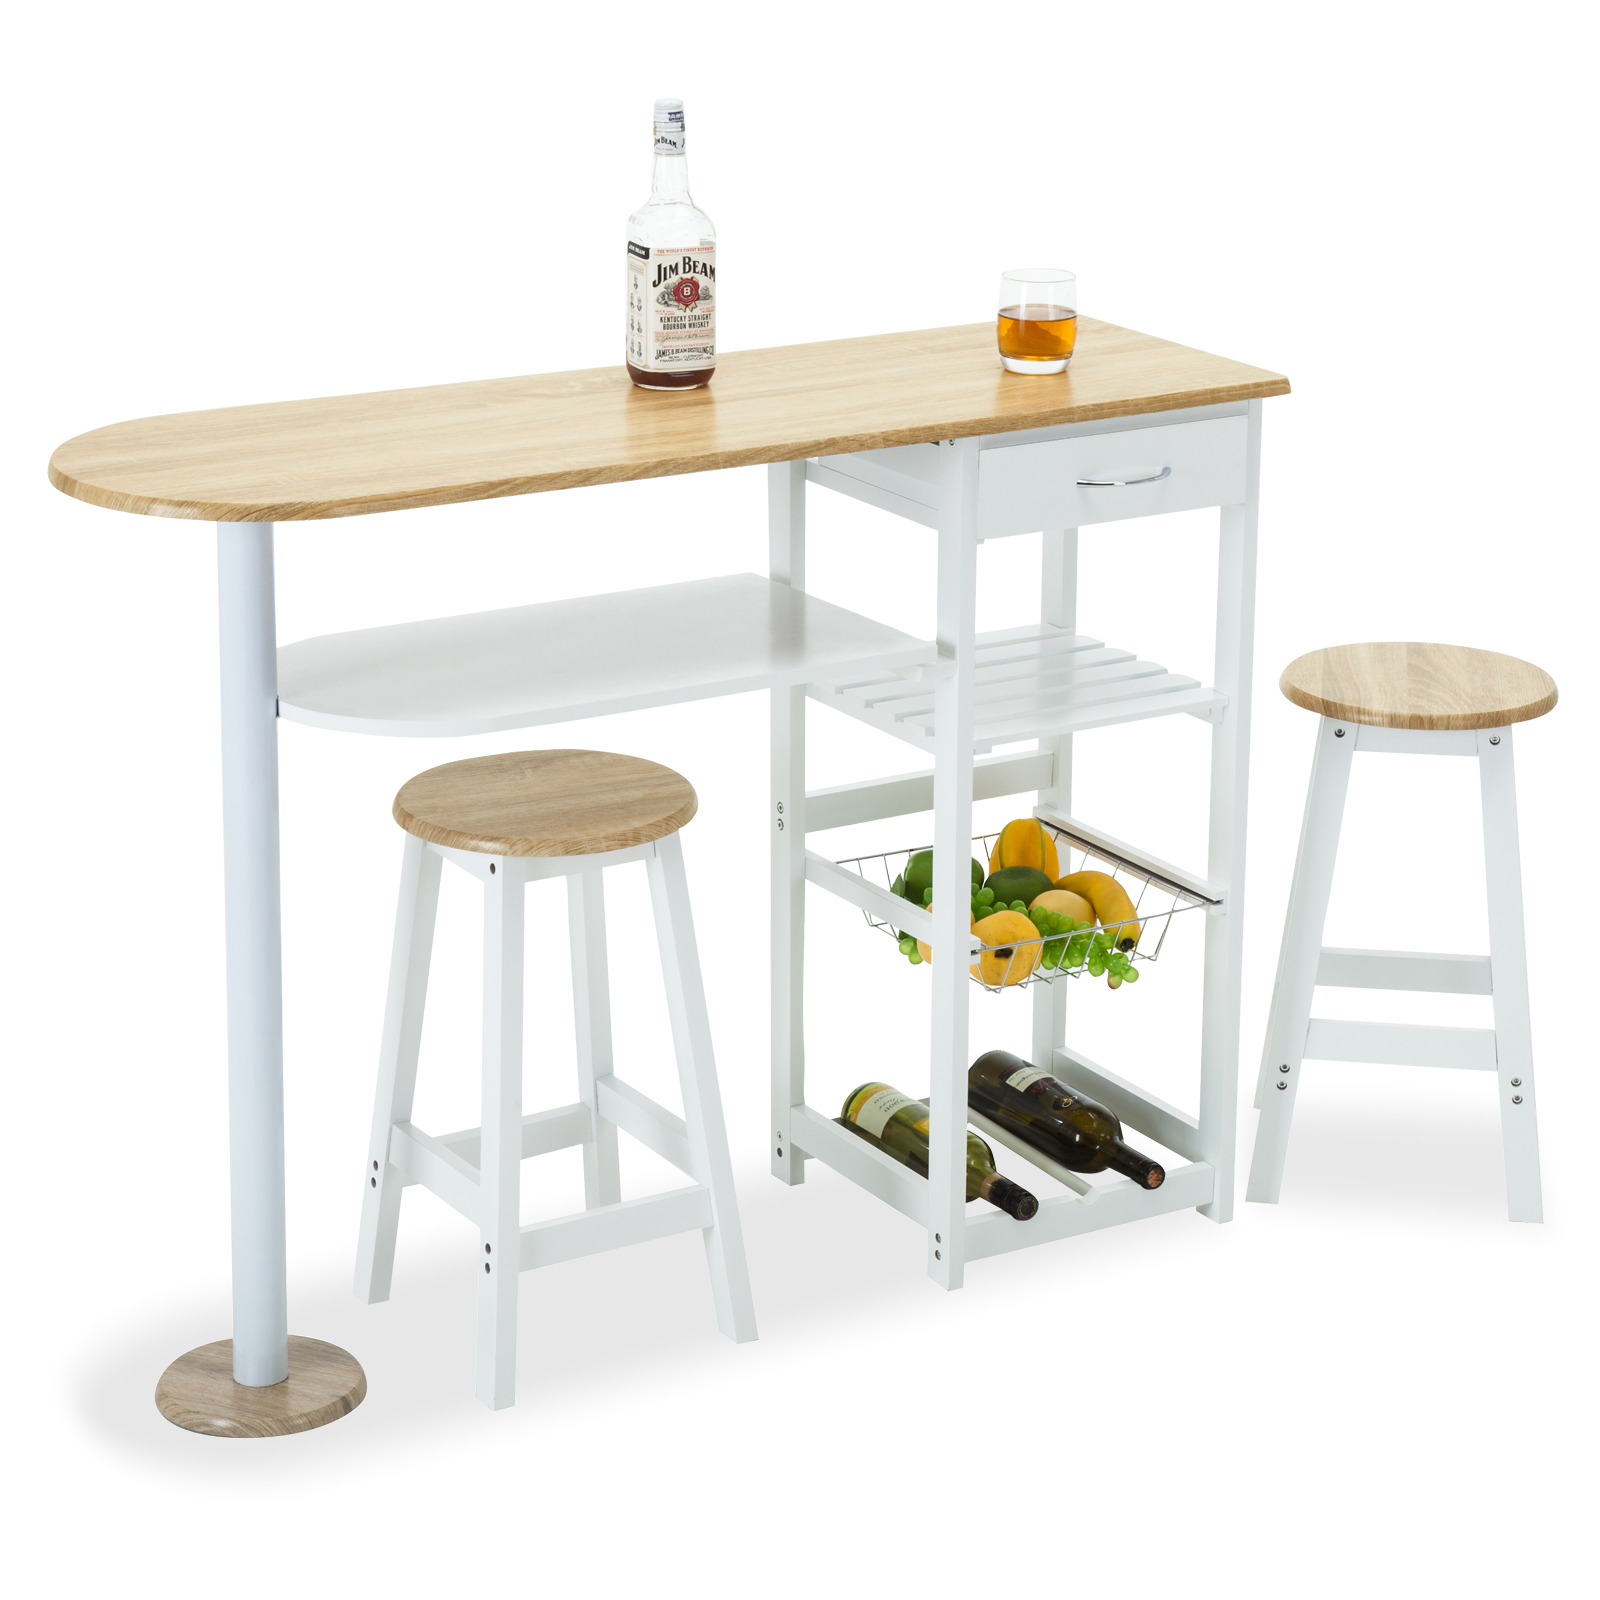 Modern Kitchen Bar Stools Kitchen Islands With Table: Oak White Kitchen Island Trolley Cart Dining Table Storage